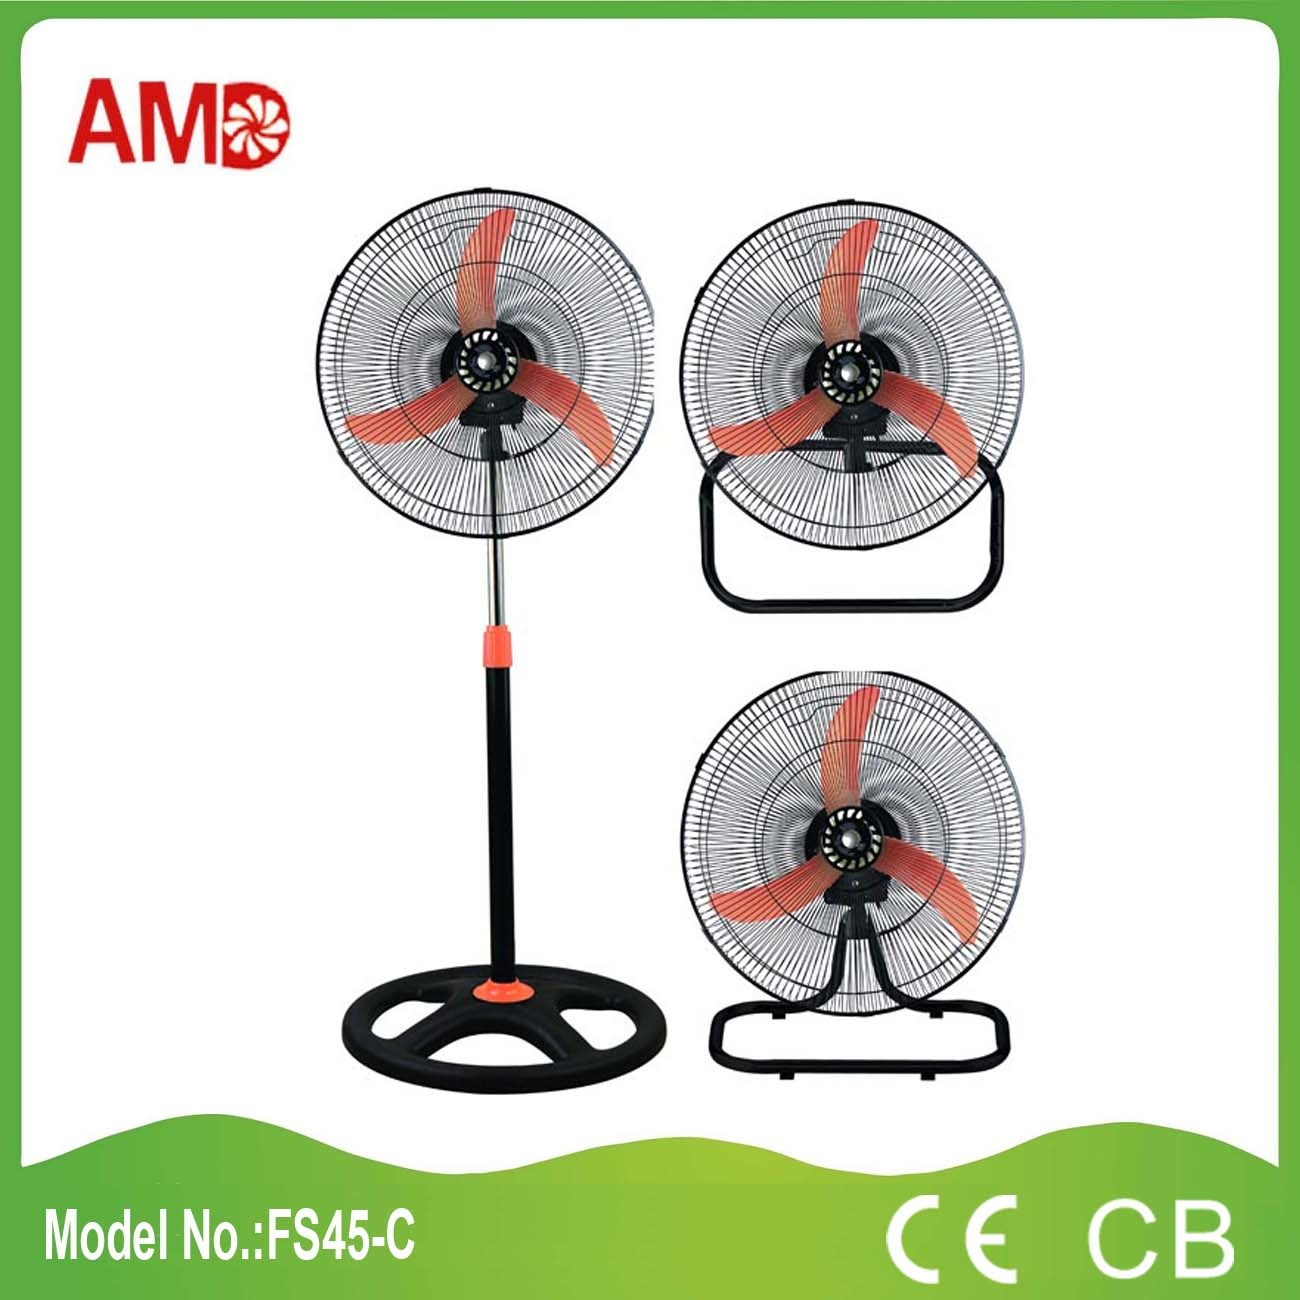 18 Inch 3 in 1 Stand Fan Table Fan Wall Fan